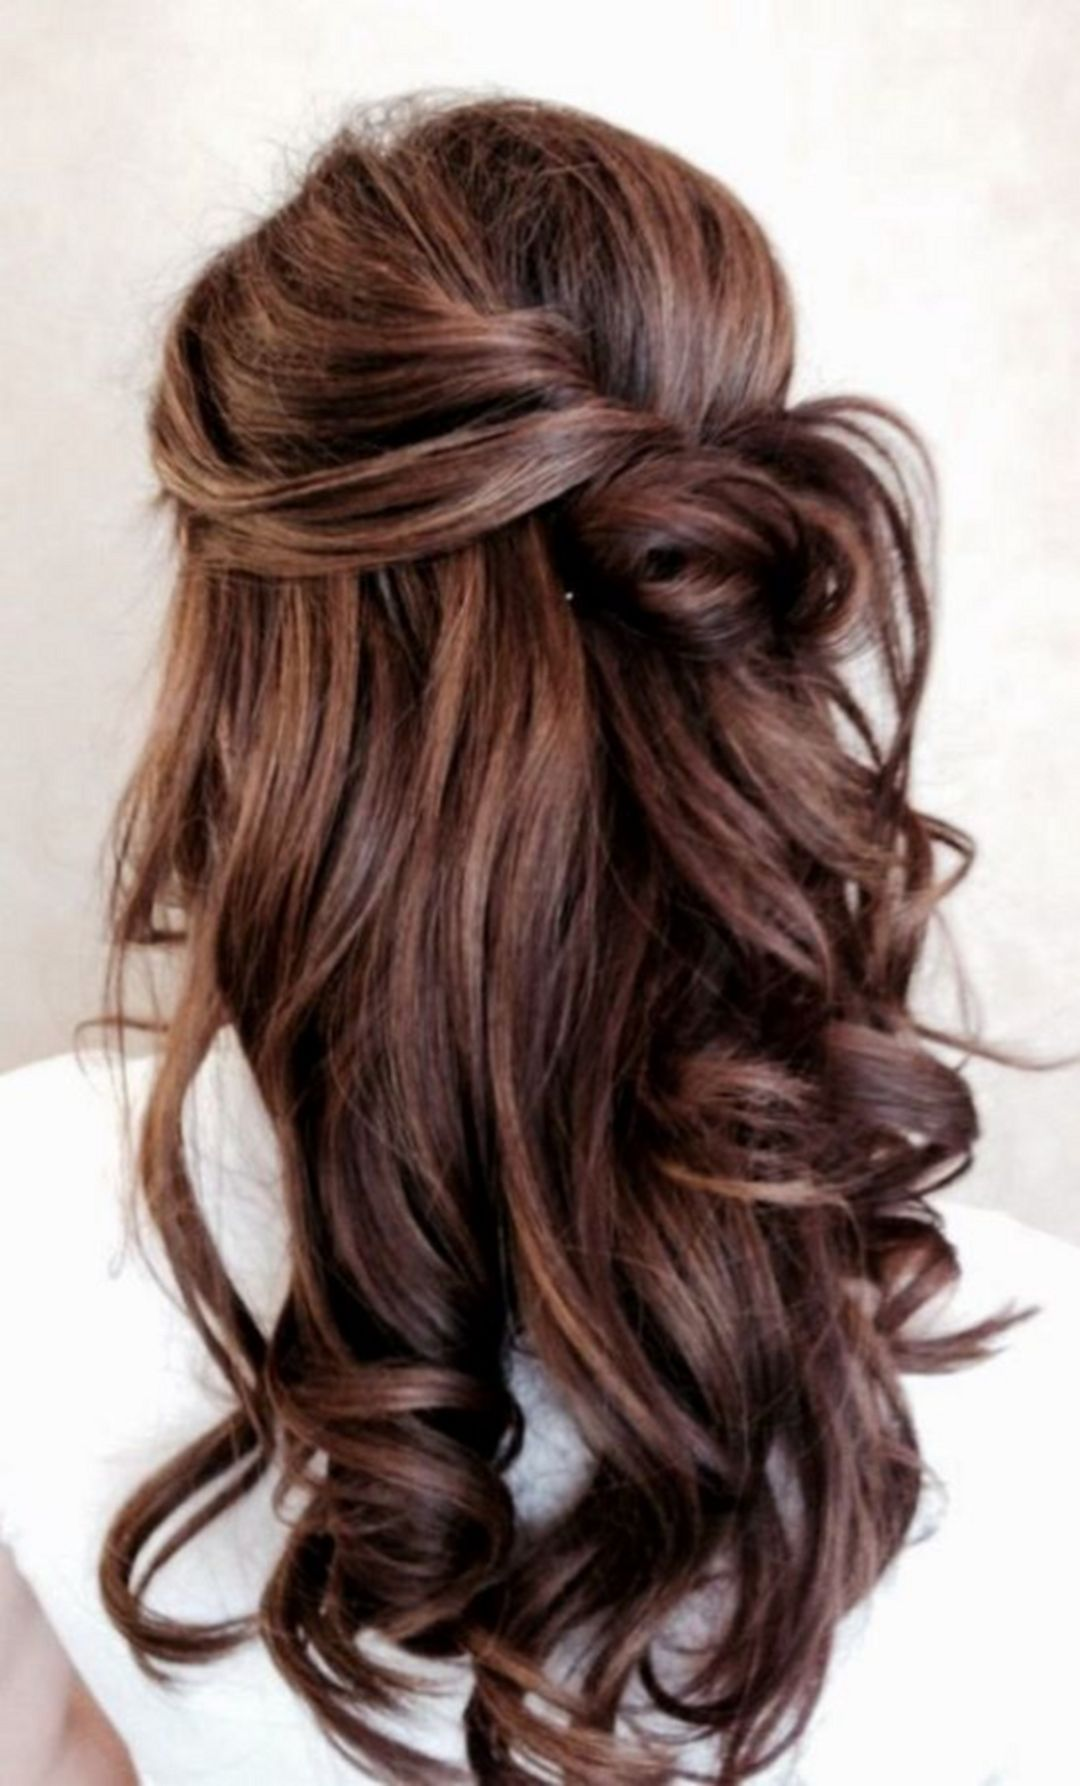 Great 55+ Dazzling Fall Wedding Hairstyle Inspirations To Look More Beautiful  https://oosile.com/55-dazzling-fall-wedding-hairstyle-inspirations-to-look-more-beautiful-7684